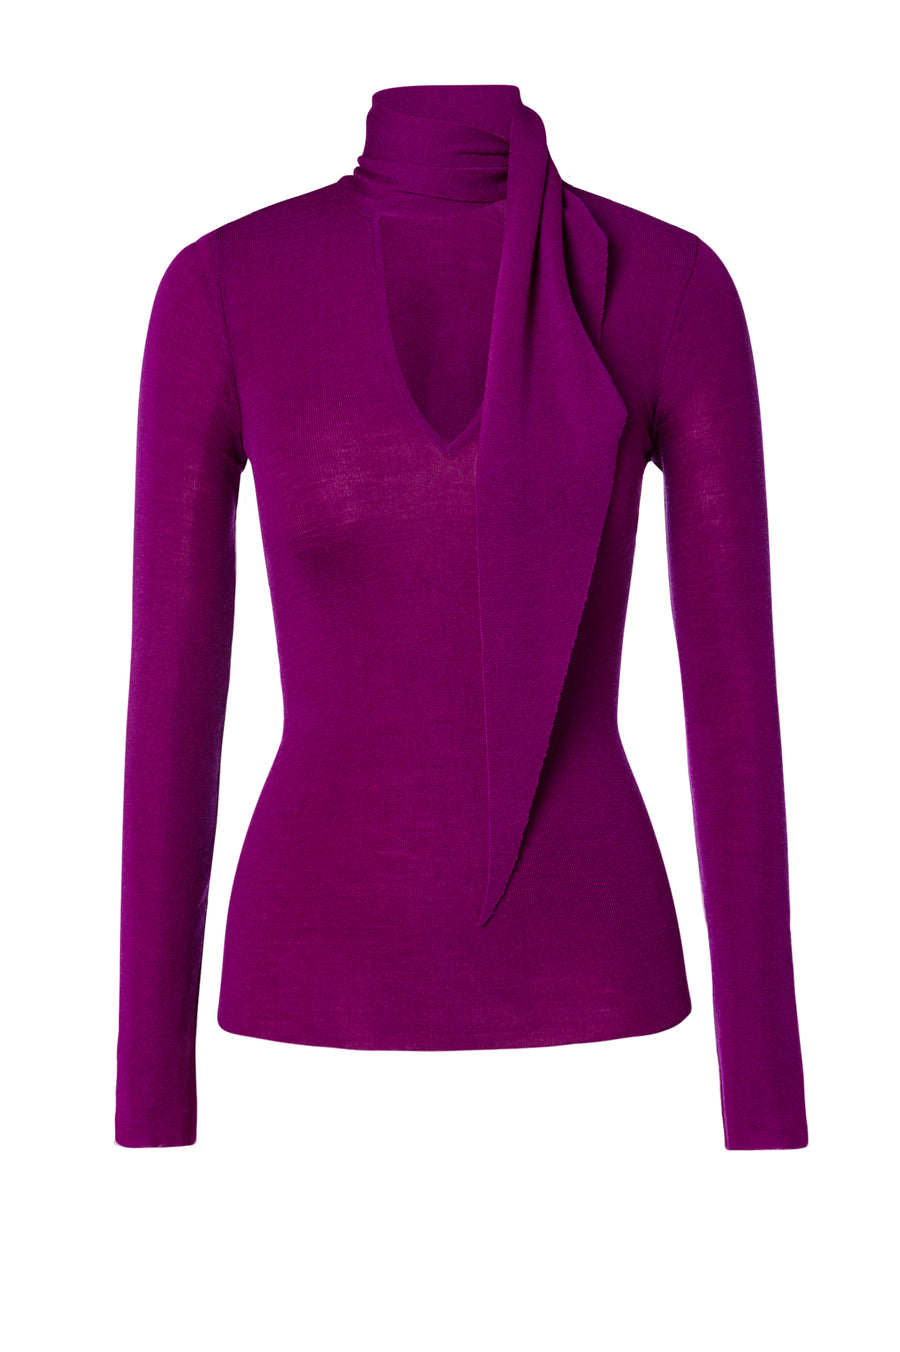 Babywool, 100% Australian Extrafine Merino, Long Sleeve, Tie Neck, color Fuchsia